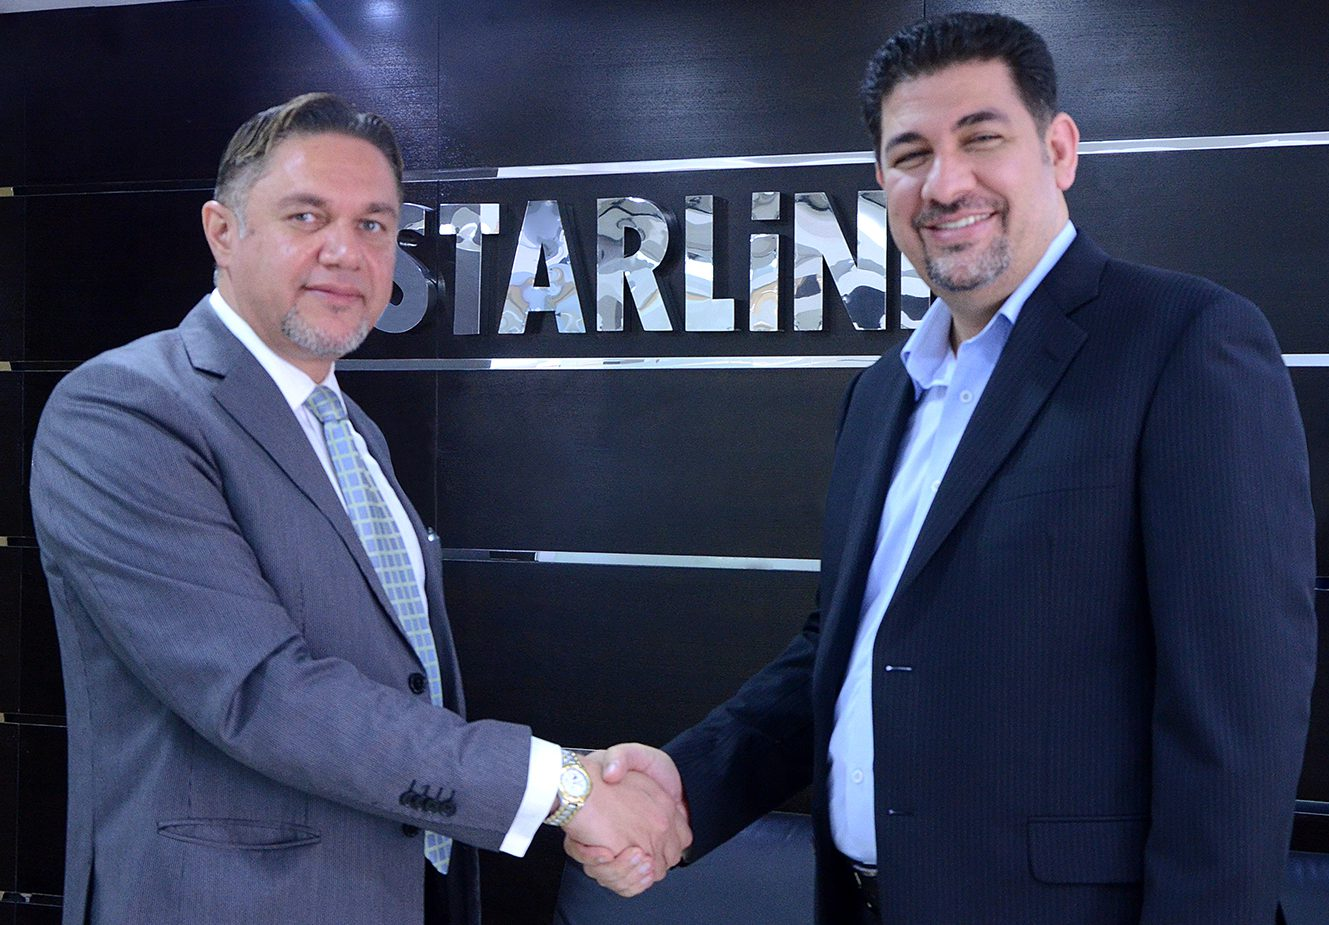 StarLink signs distribution agreement with LogRhythm